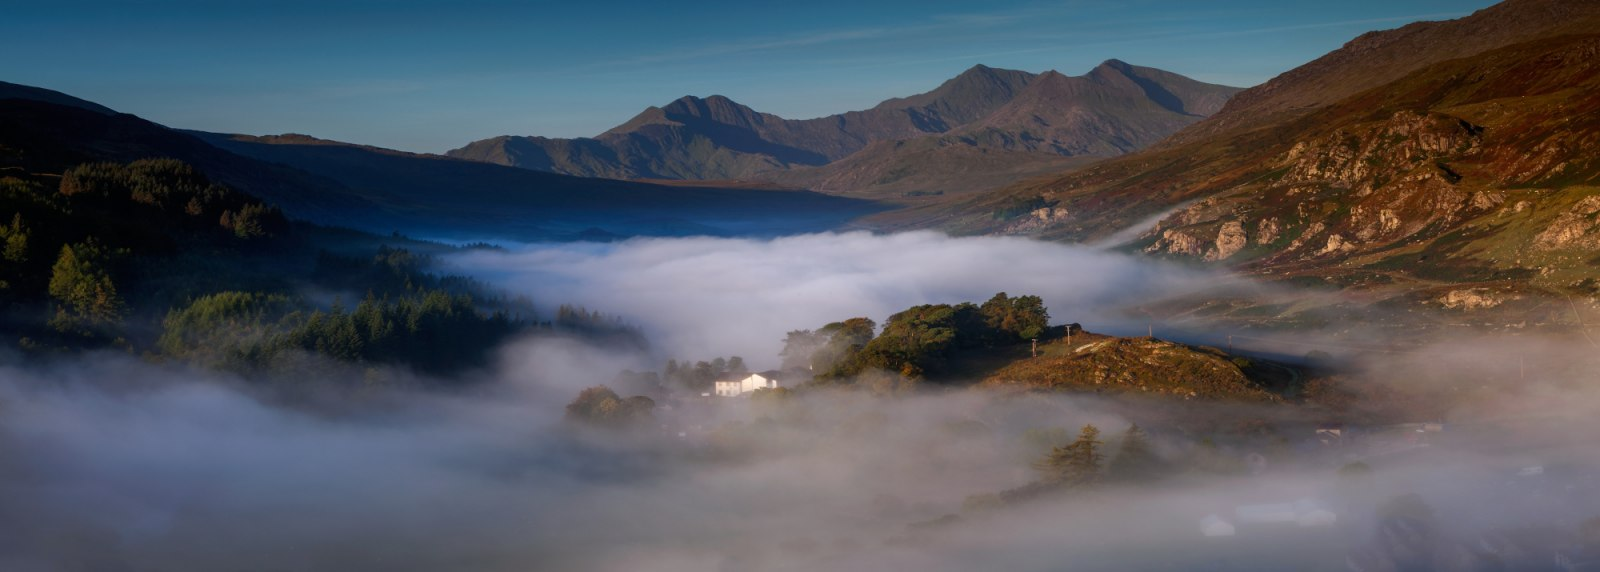 Workshops Snowdonia Wales  Landscape photography of North Wales